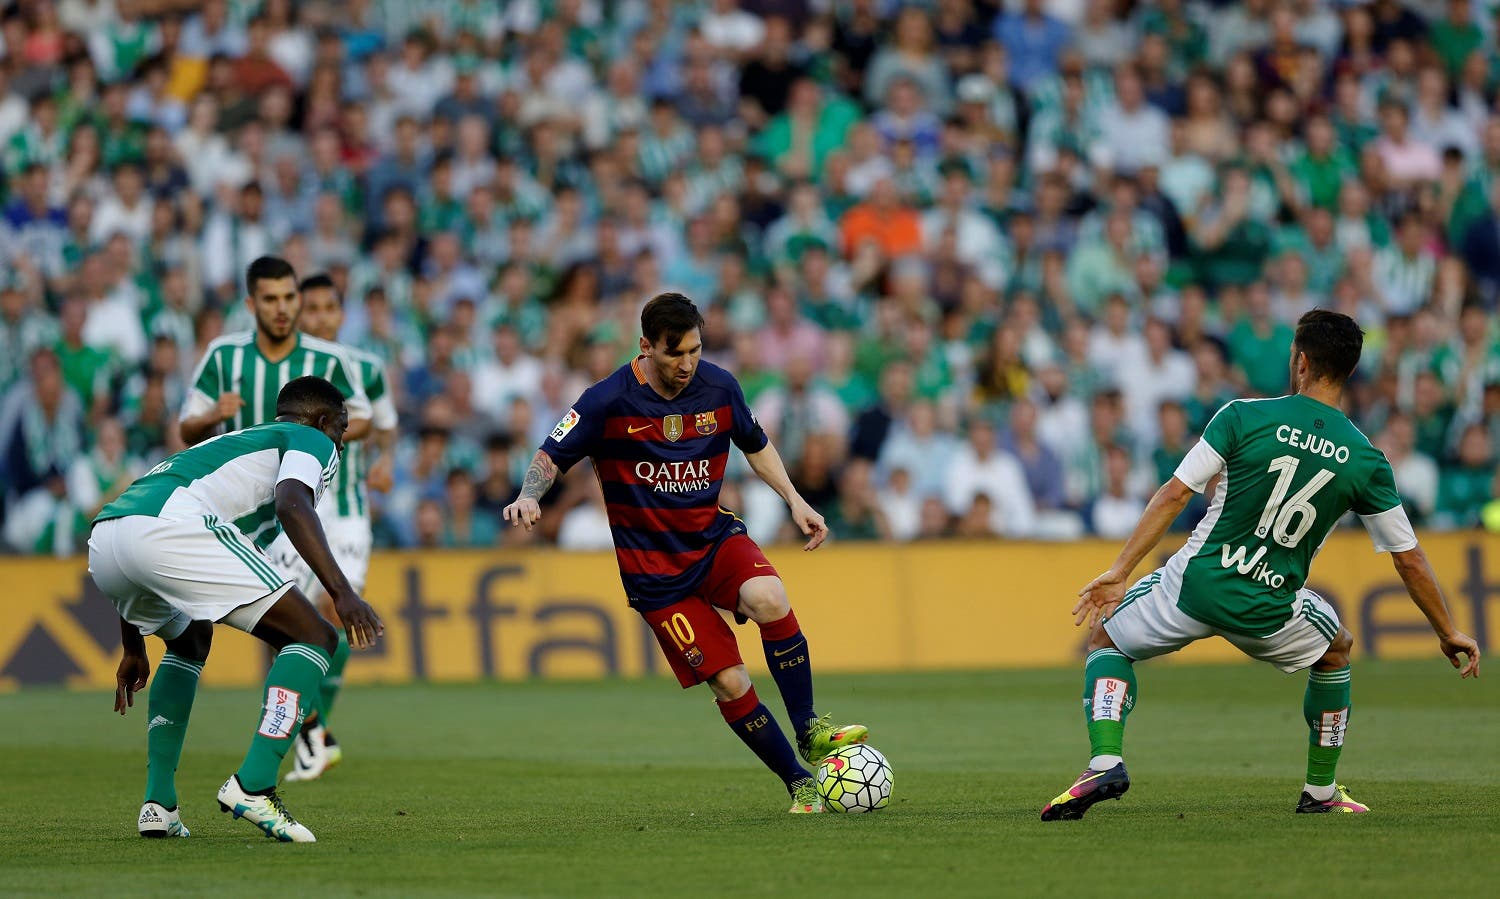 Barcelona's Leo Messi in action between Real Betis' players. REUTERS